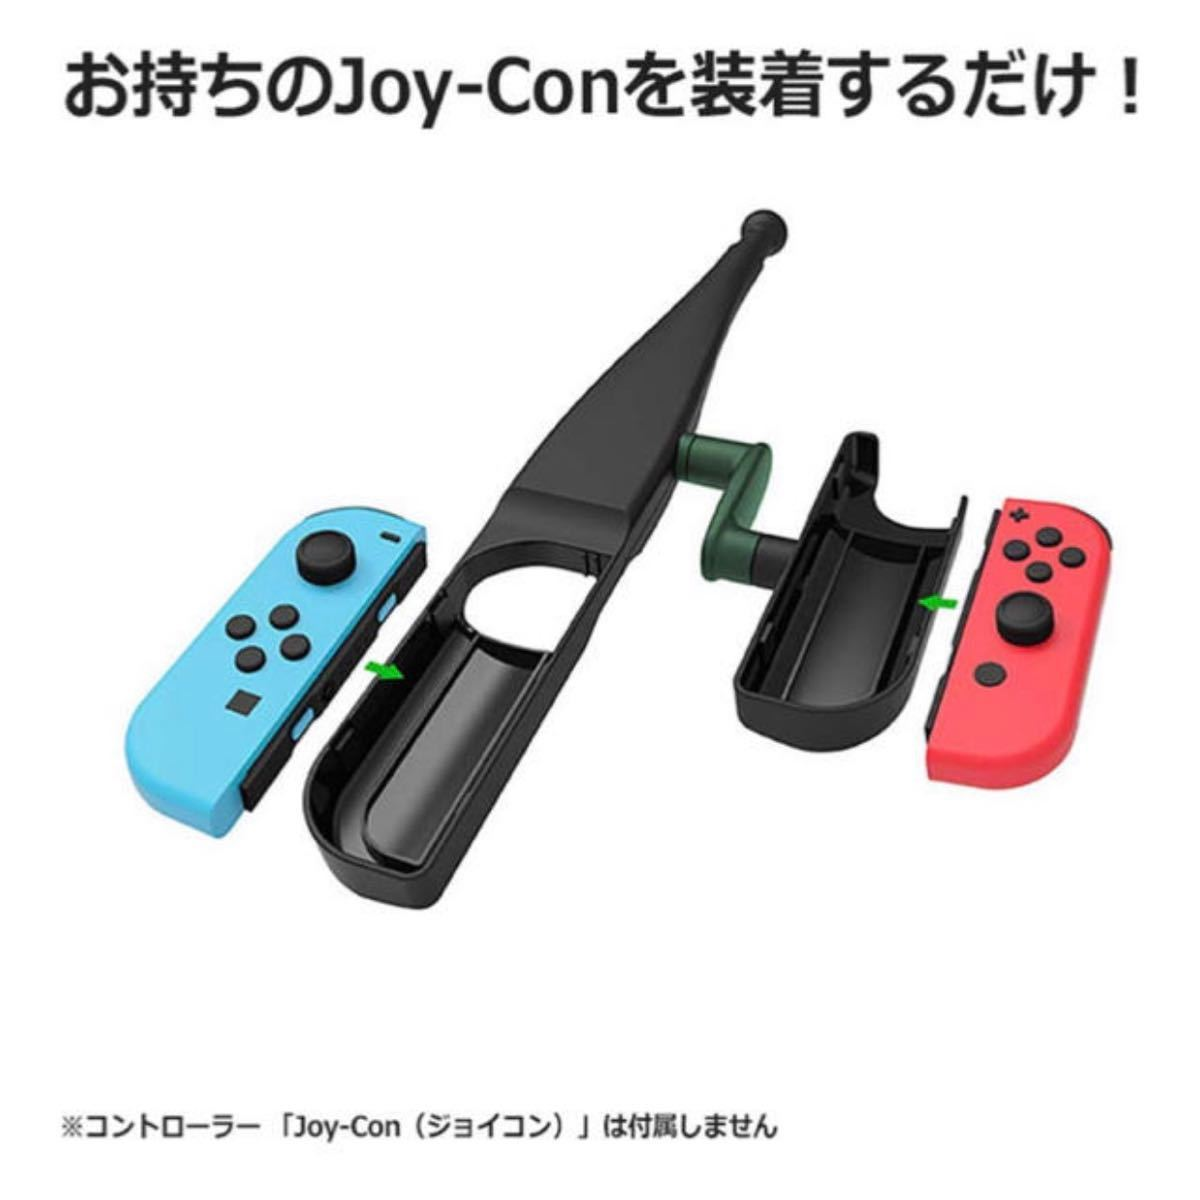 Switch ジョイコン用 釣りロッド 釣り竿 釣竿 釣りスピリッツ対応